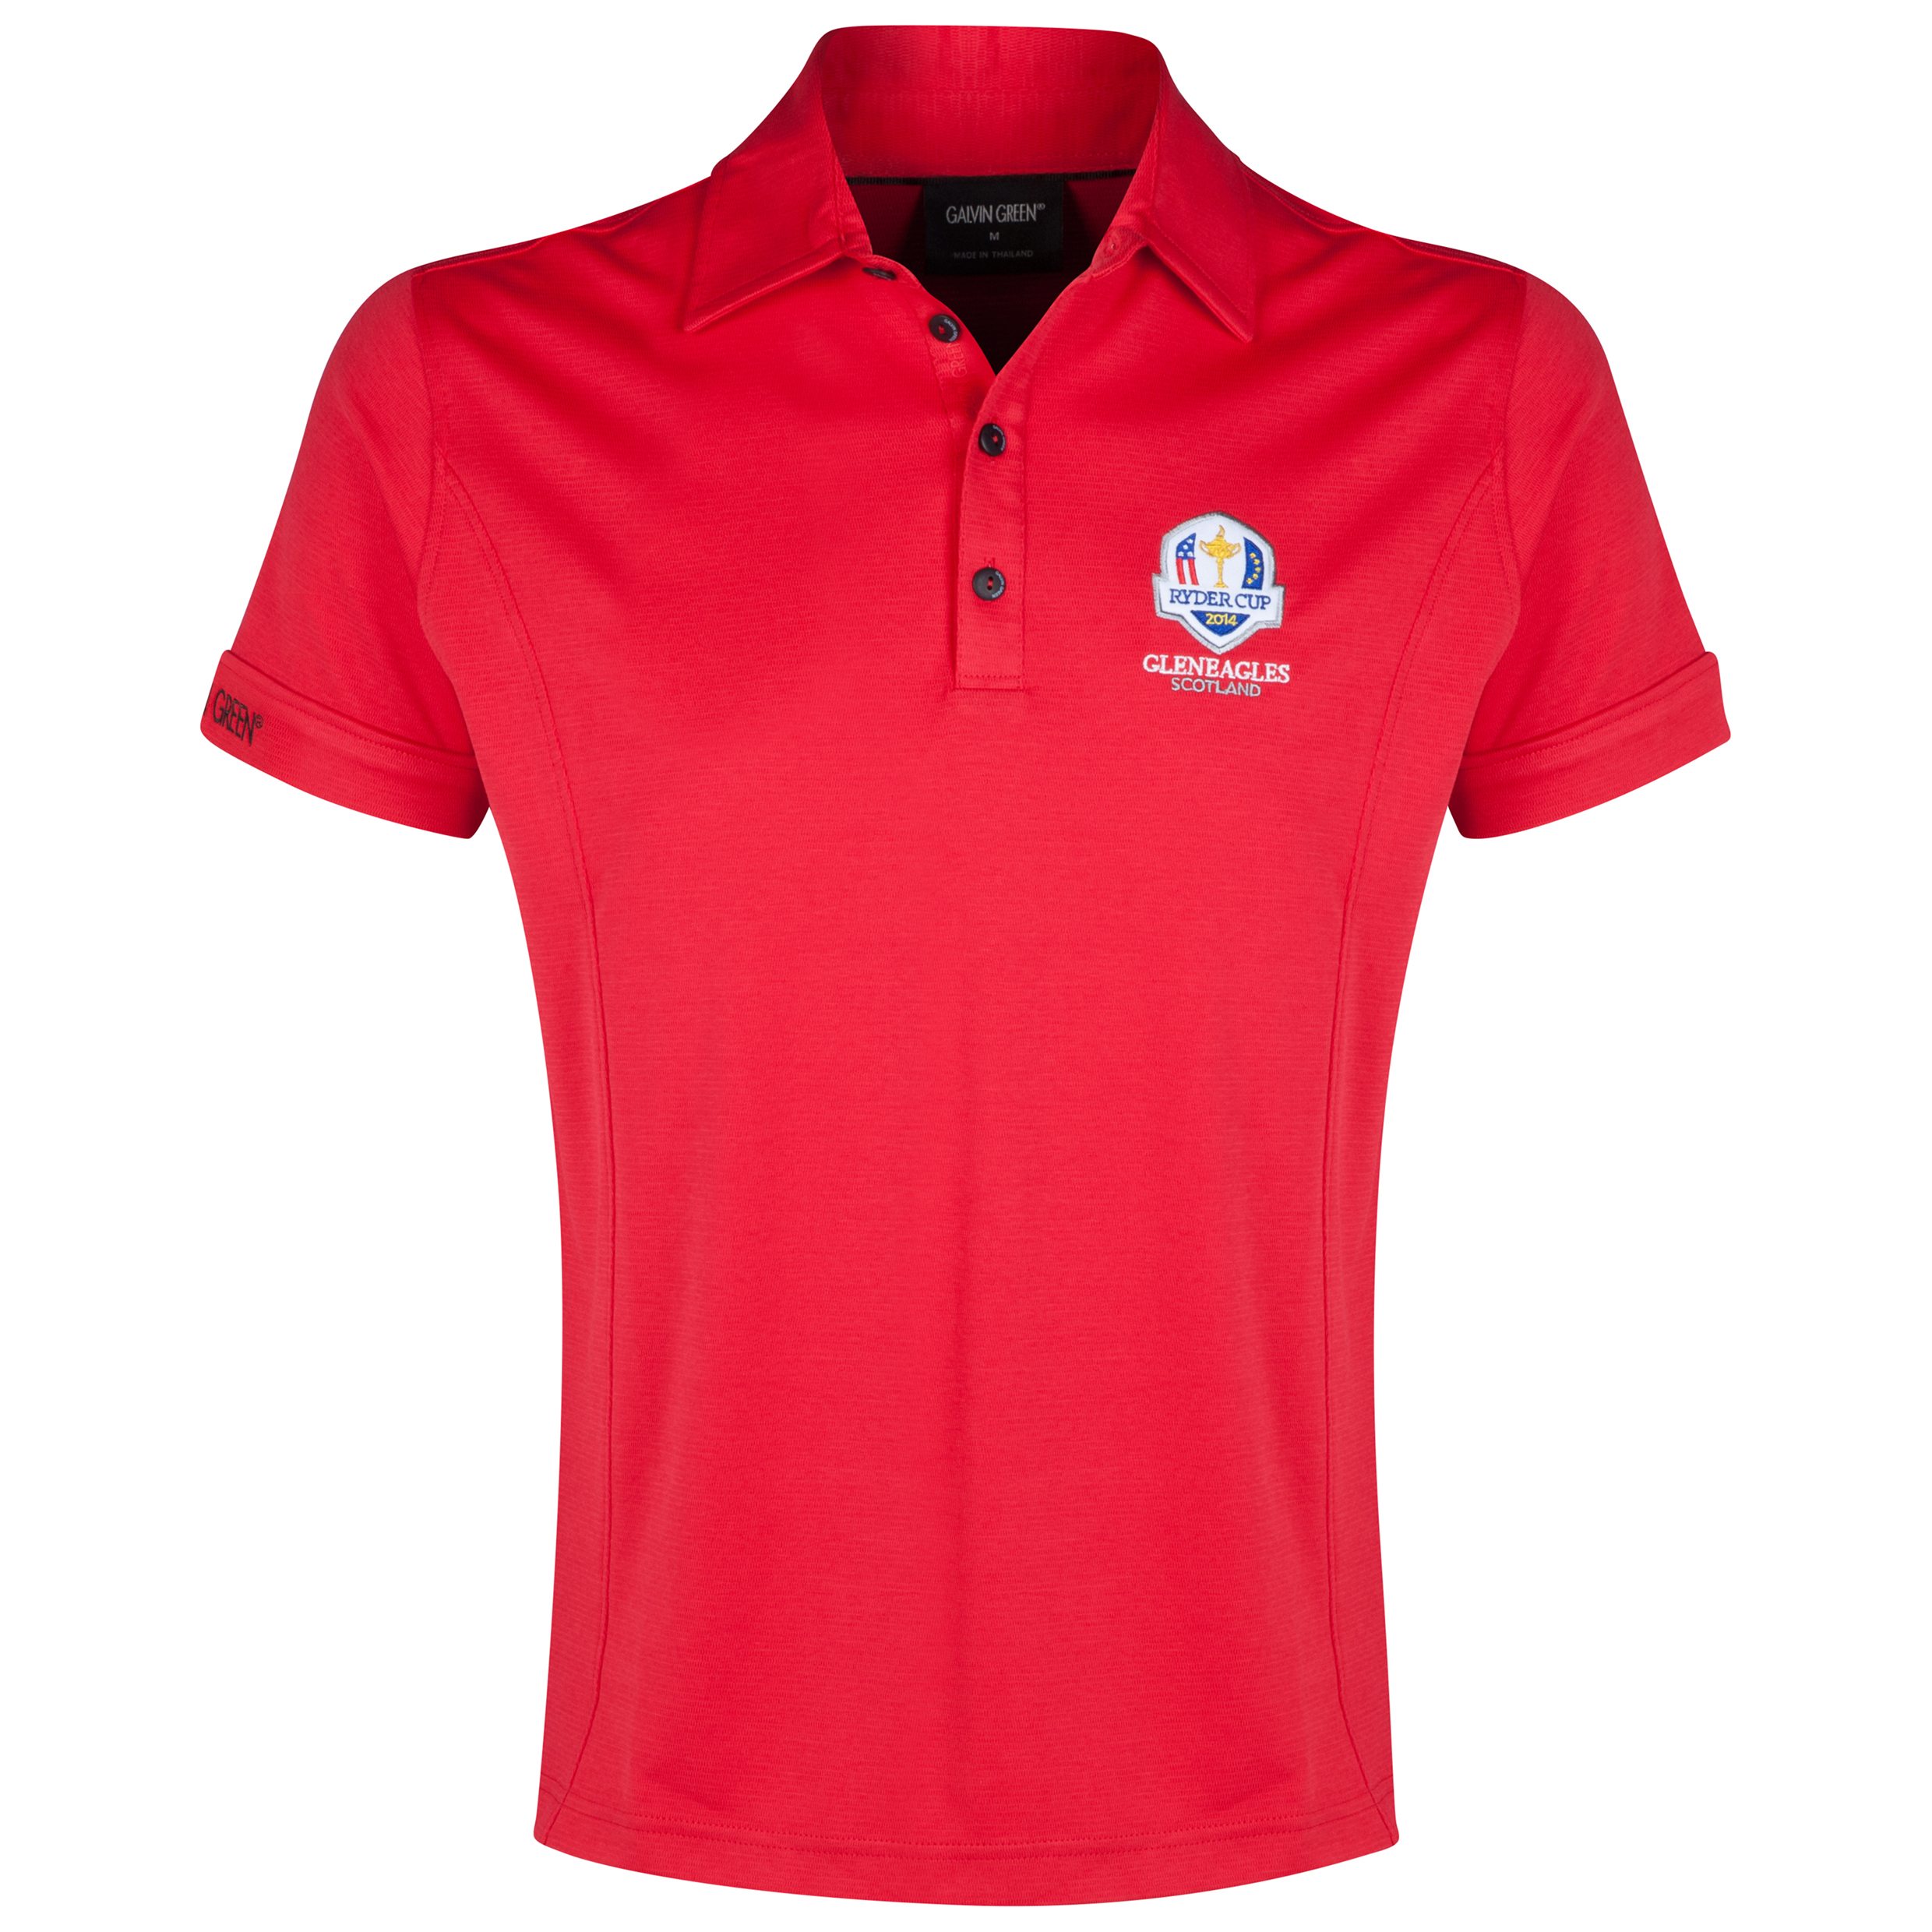 The 2014 Ryder Cup Galvin Green Mark Polo Red